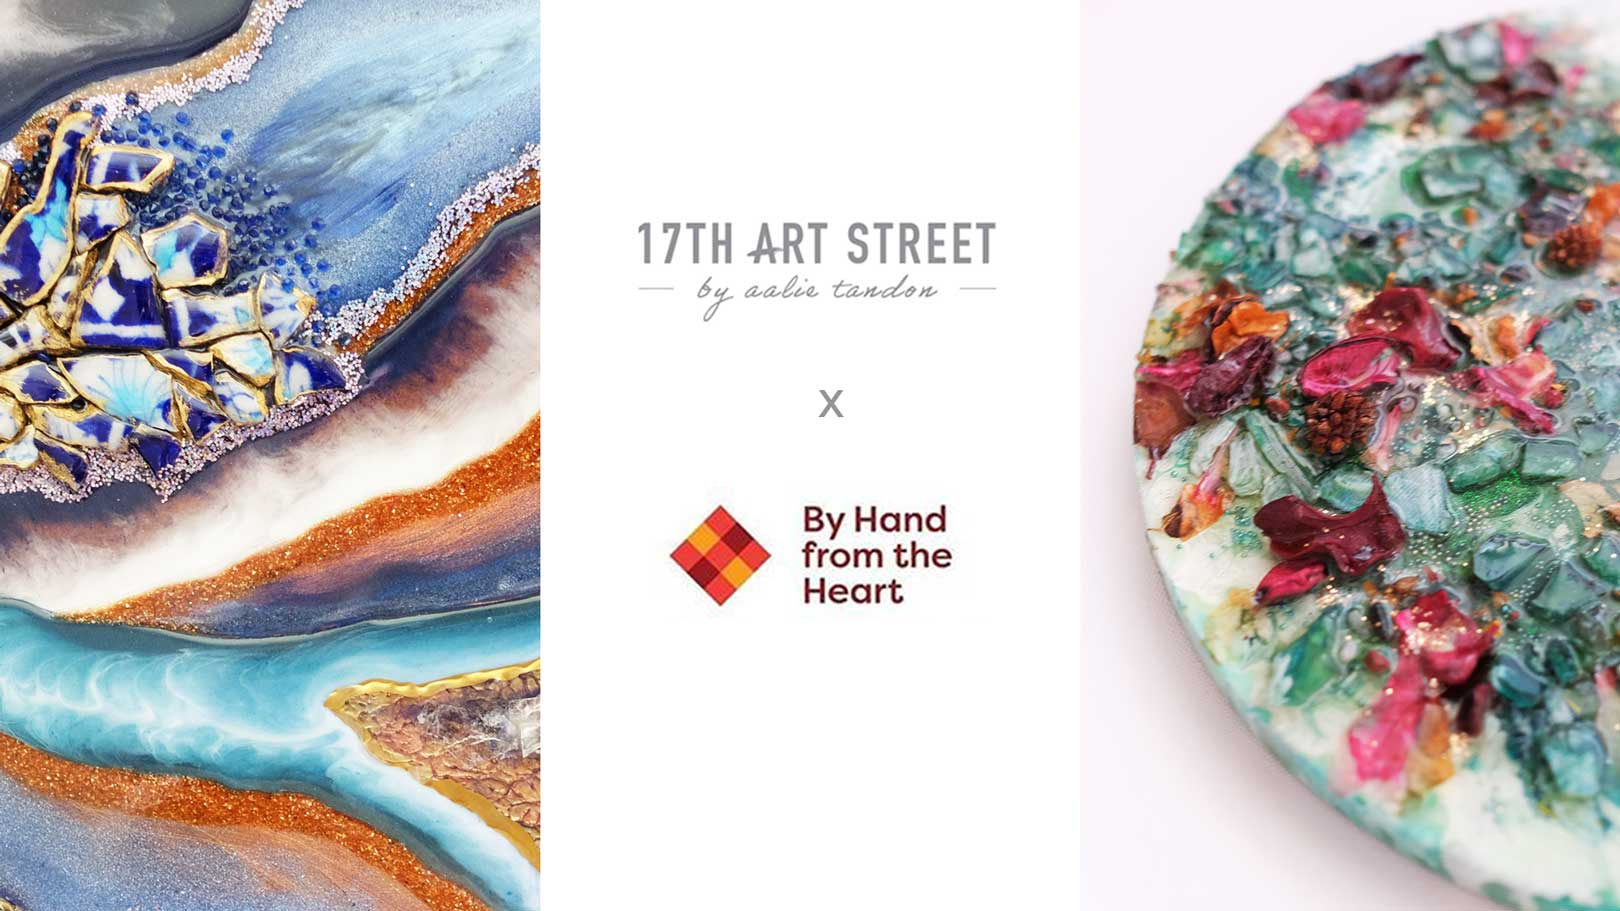 17th Art Street by Aalie Tandon X ByHandFromtheHeart Interview